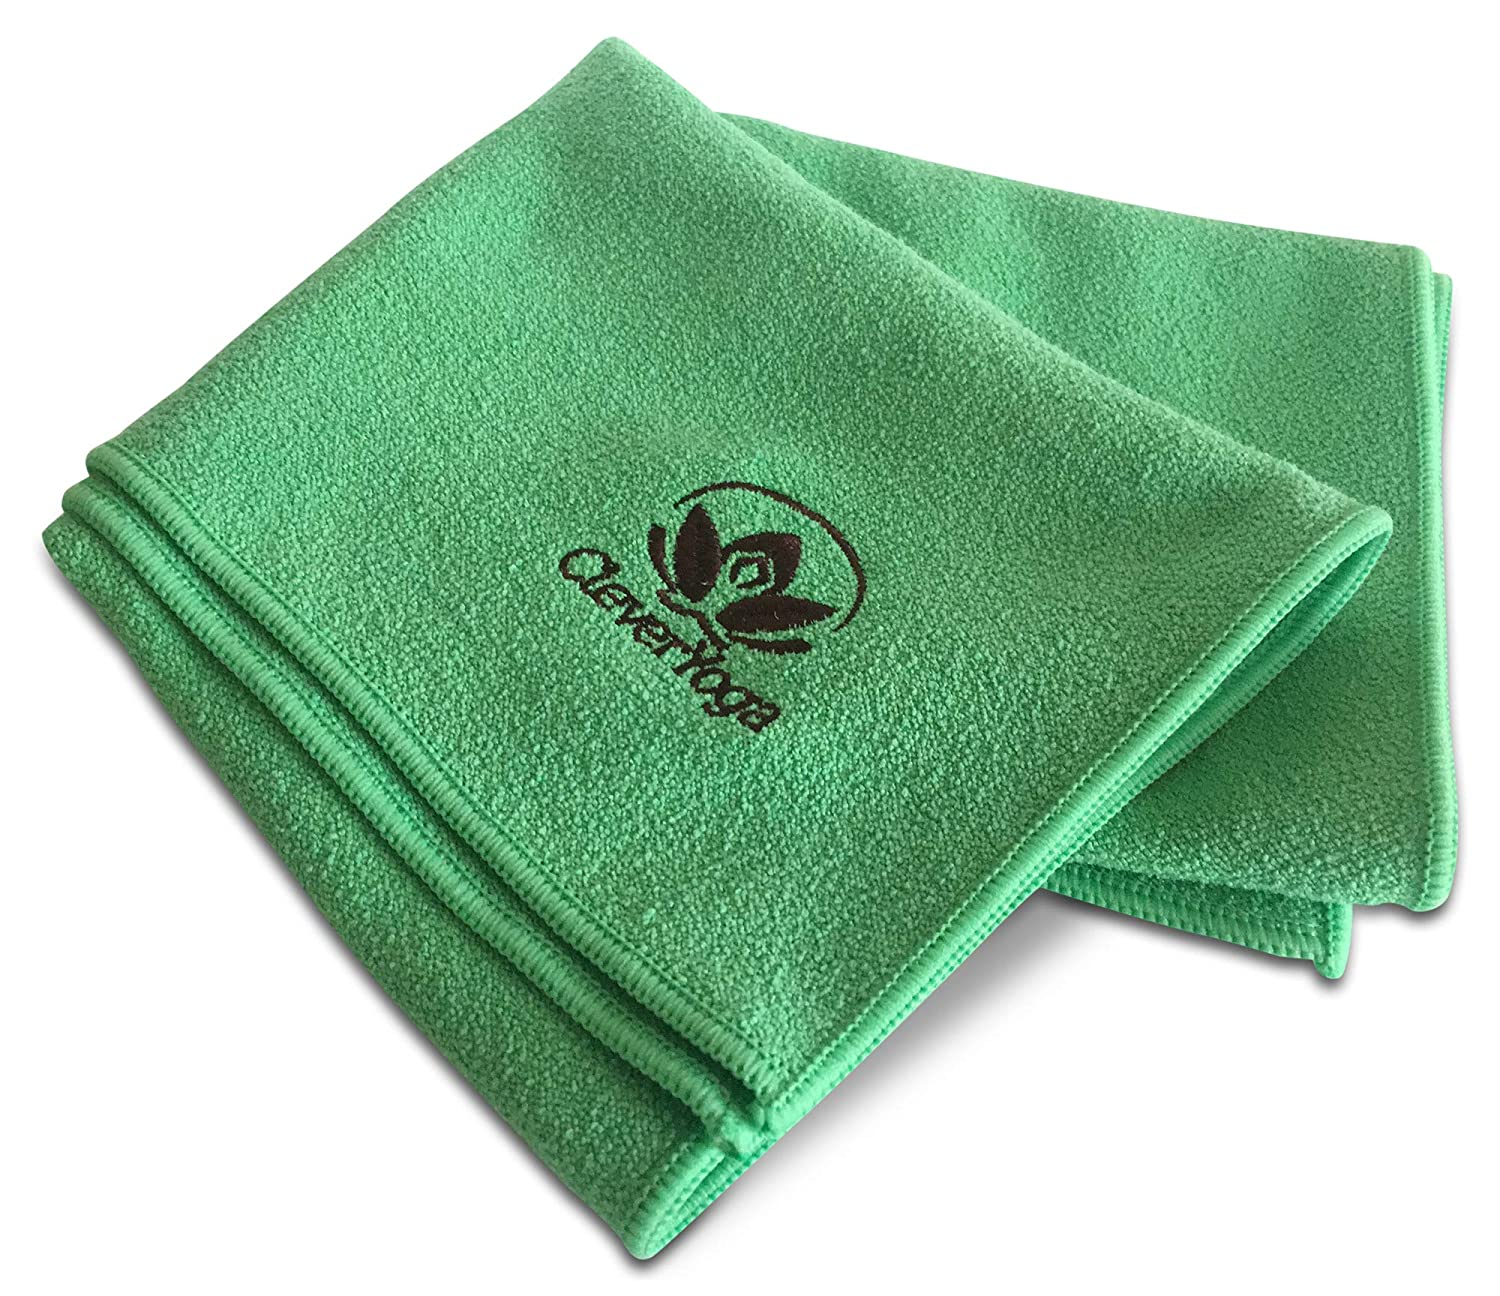 Amazon.com : Clever Yoga Gym Towels for Men and Women ...